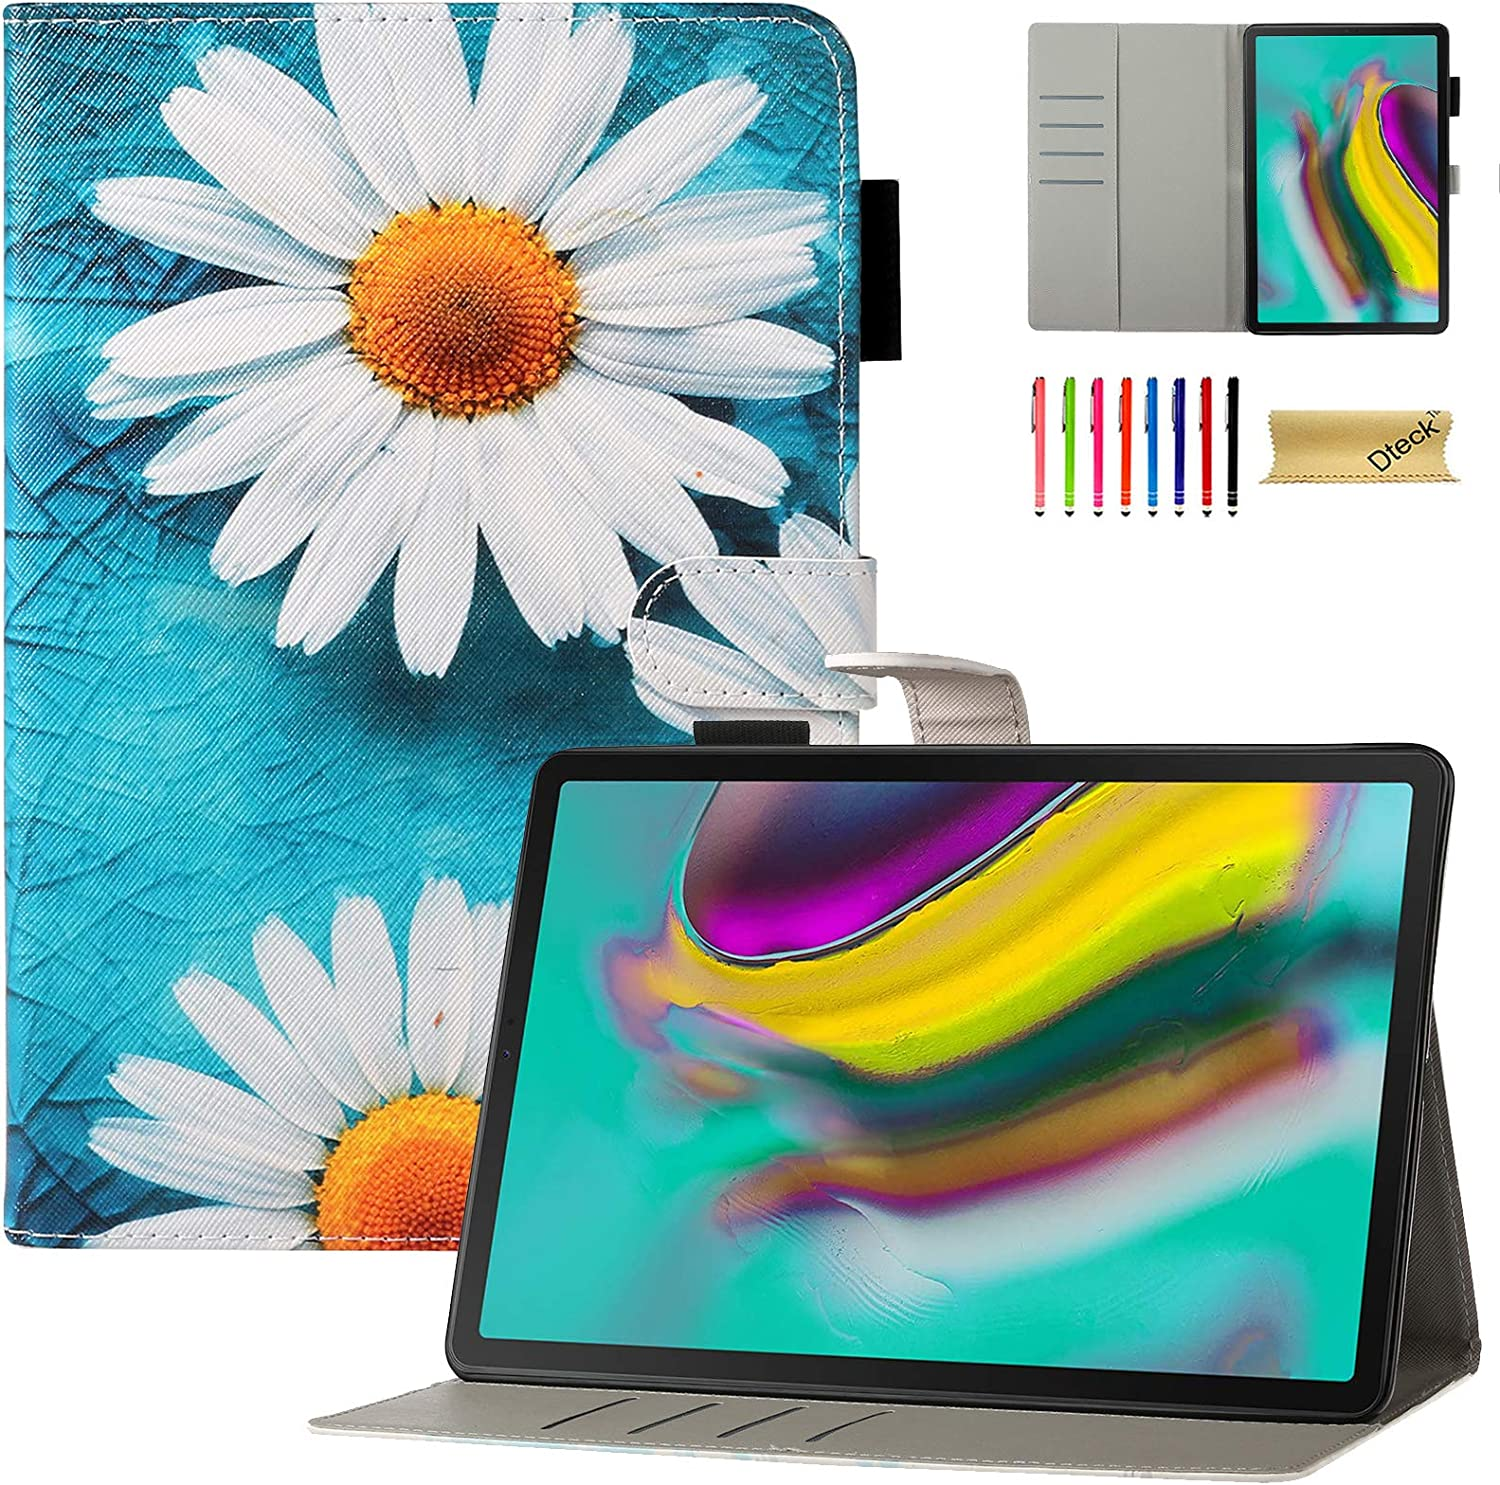 iPad 7th Generation, iPad 10.2 Case 2019, Dteck Slim Folio Stand Premium PU Leather Wallet Case with Auto Sleep/Wake Protective Smart Cover for Apple iPad Pro 10.5 2019/2017 Release, Daisy